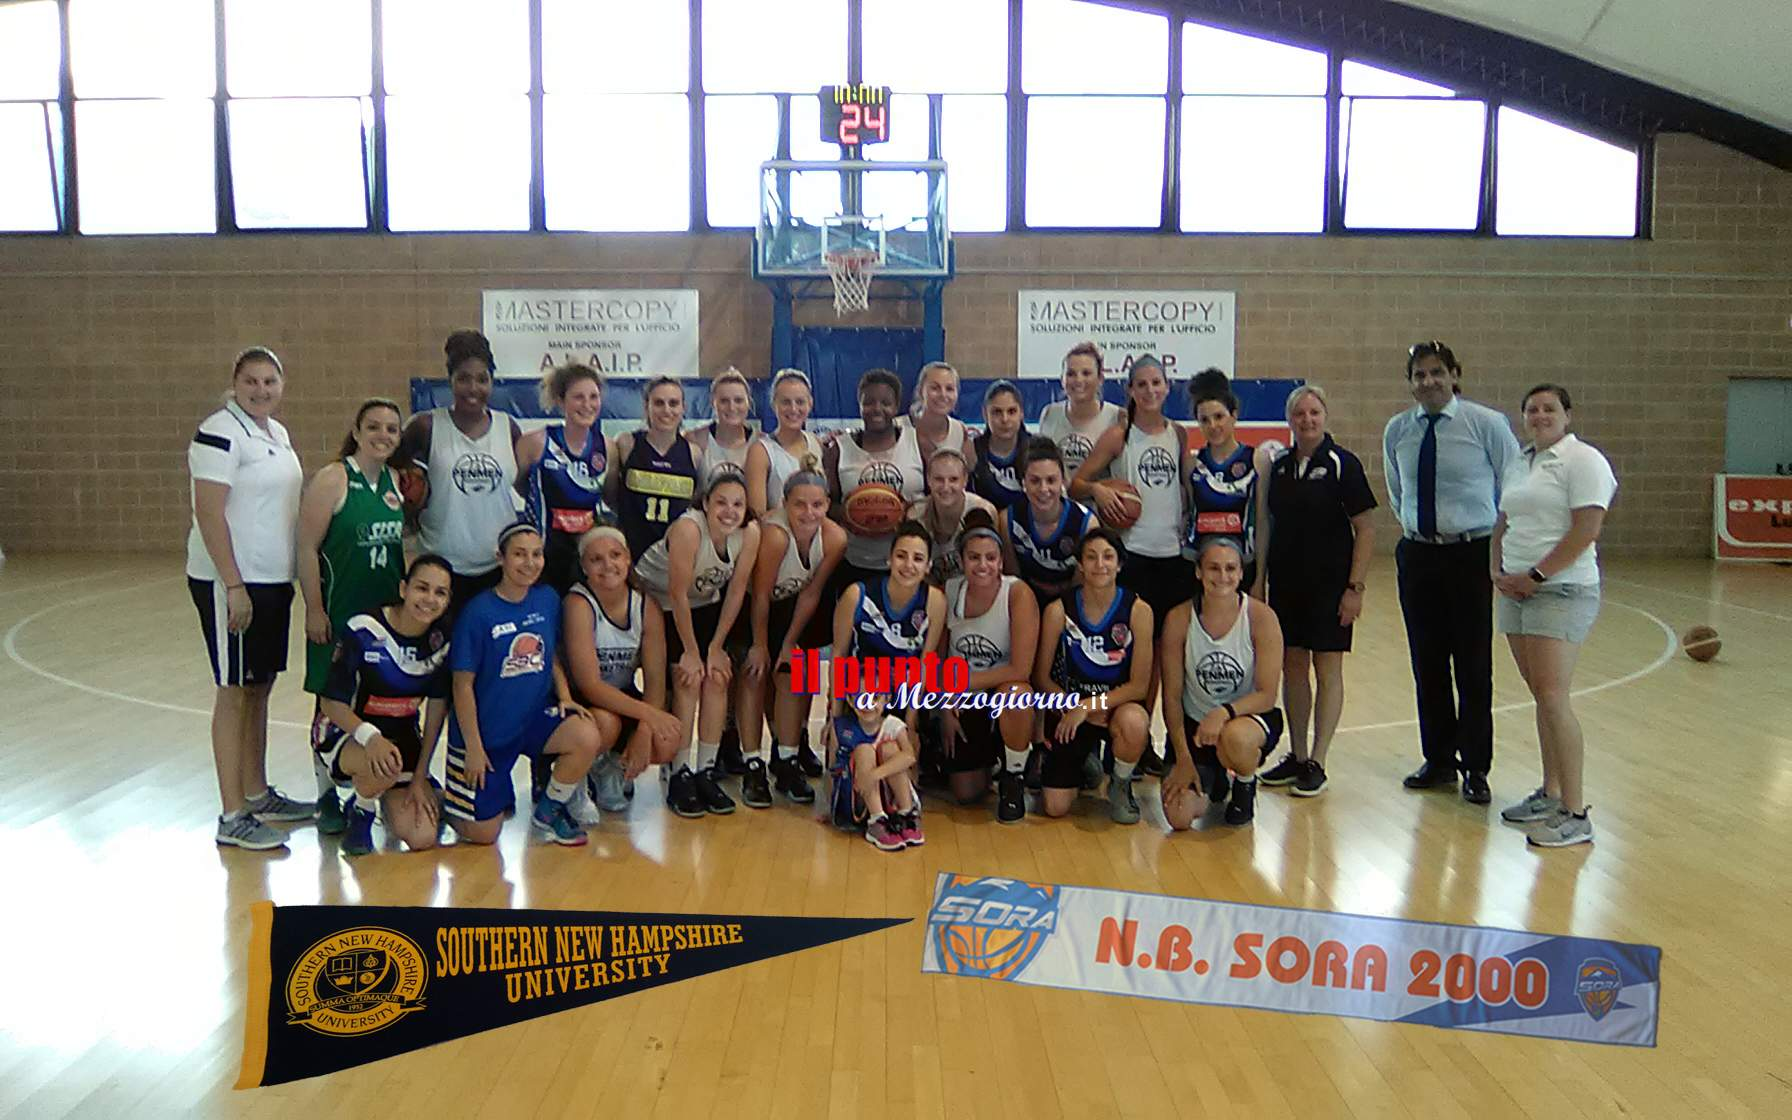 Basket femminile: N.B. Sora 2000 amichevole con New Hampshire University